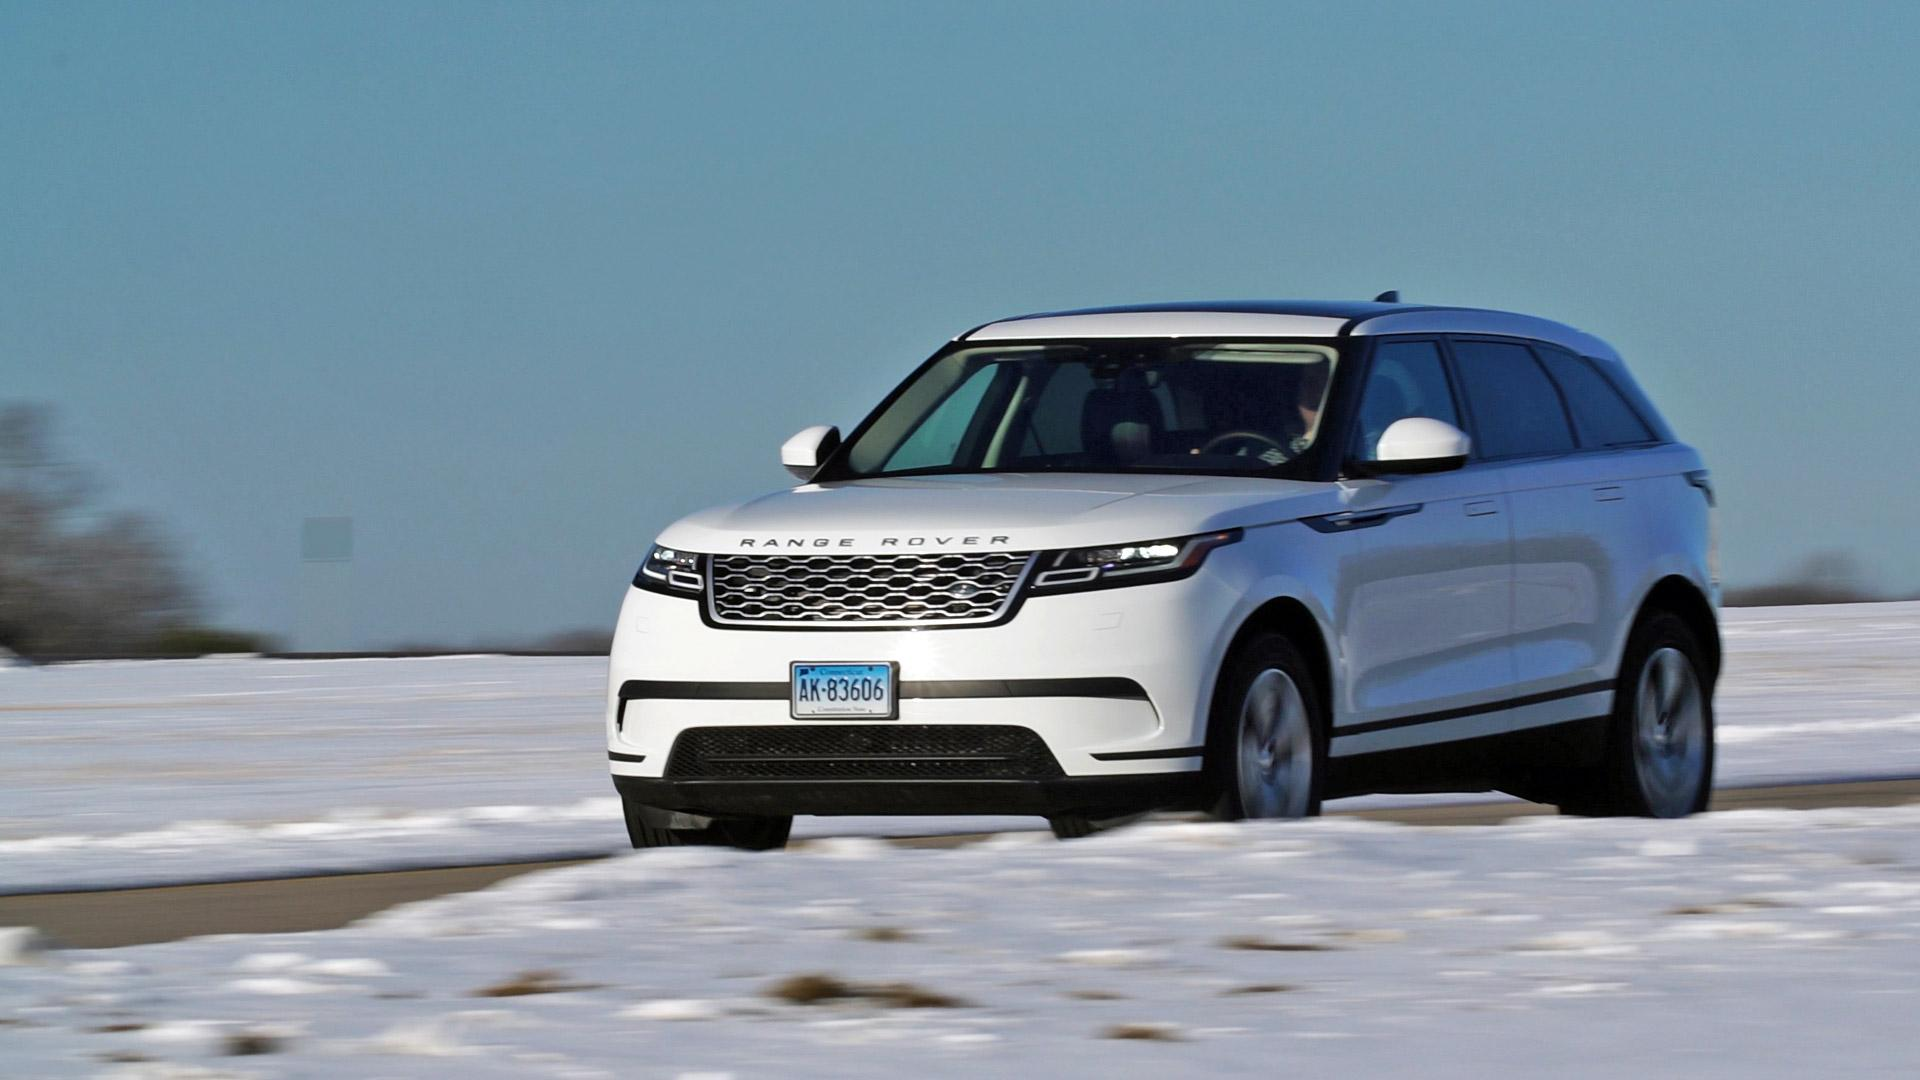 2018 Land Rover Range Velar Reviews Ratings Prices 2007 Sport Supercharged Firing Order With Diagrams And Images Consumer Reports